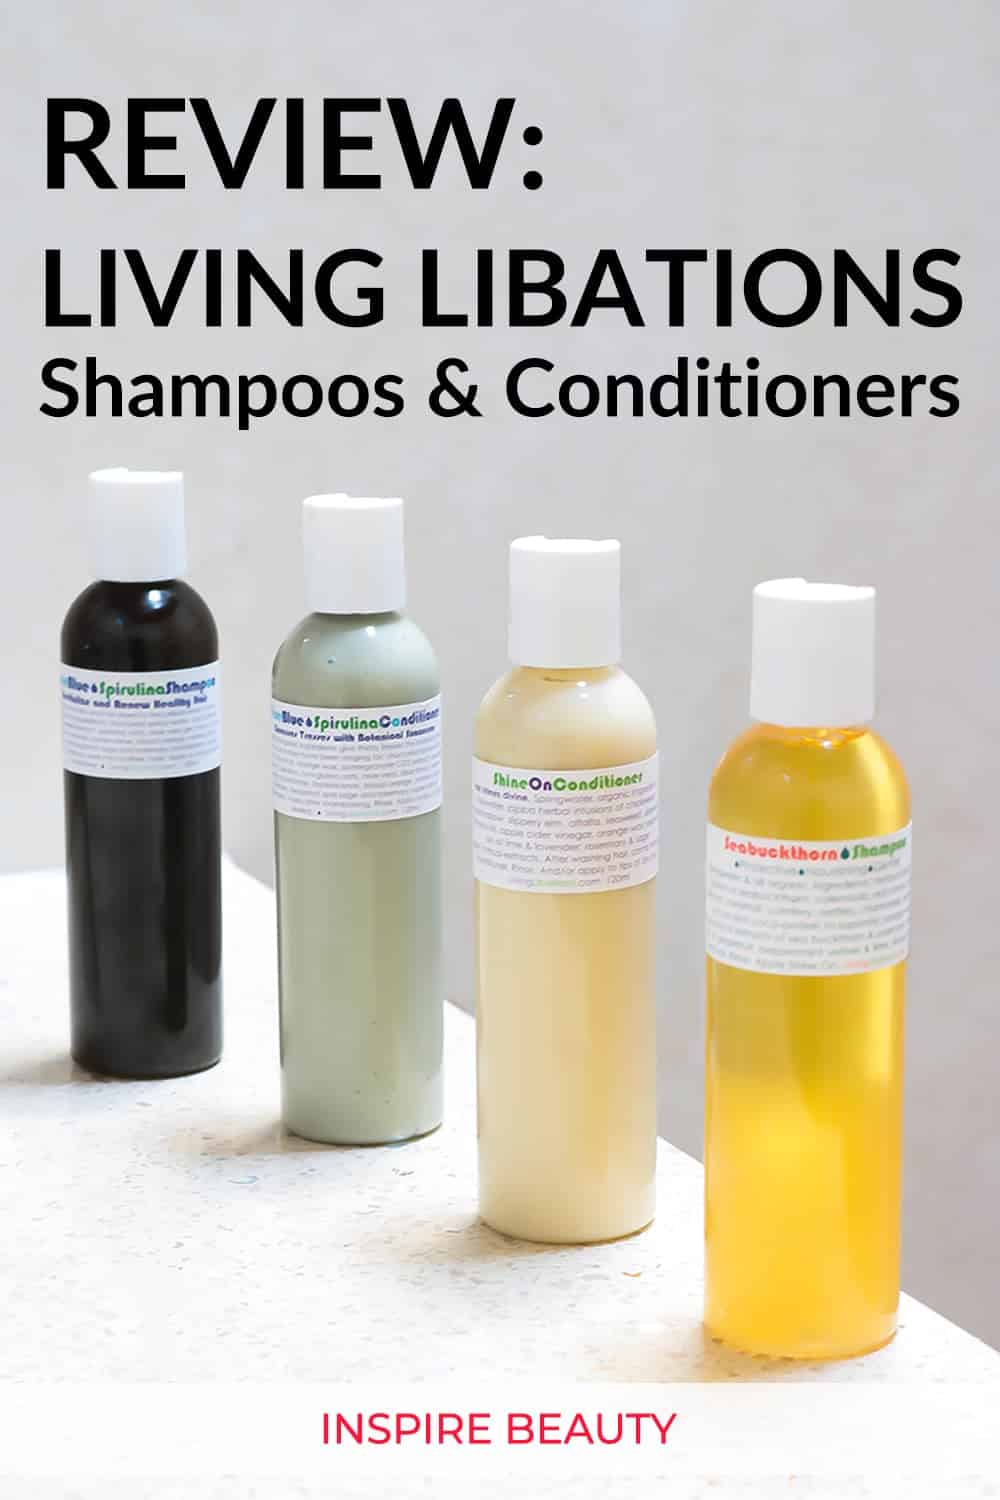 Living Libations shampoo and conditioner review featuring Seabuckthorn Shampoo, Shine On Conditioner, True Blue Spirulina Shampoo and Conditioner.